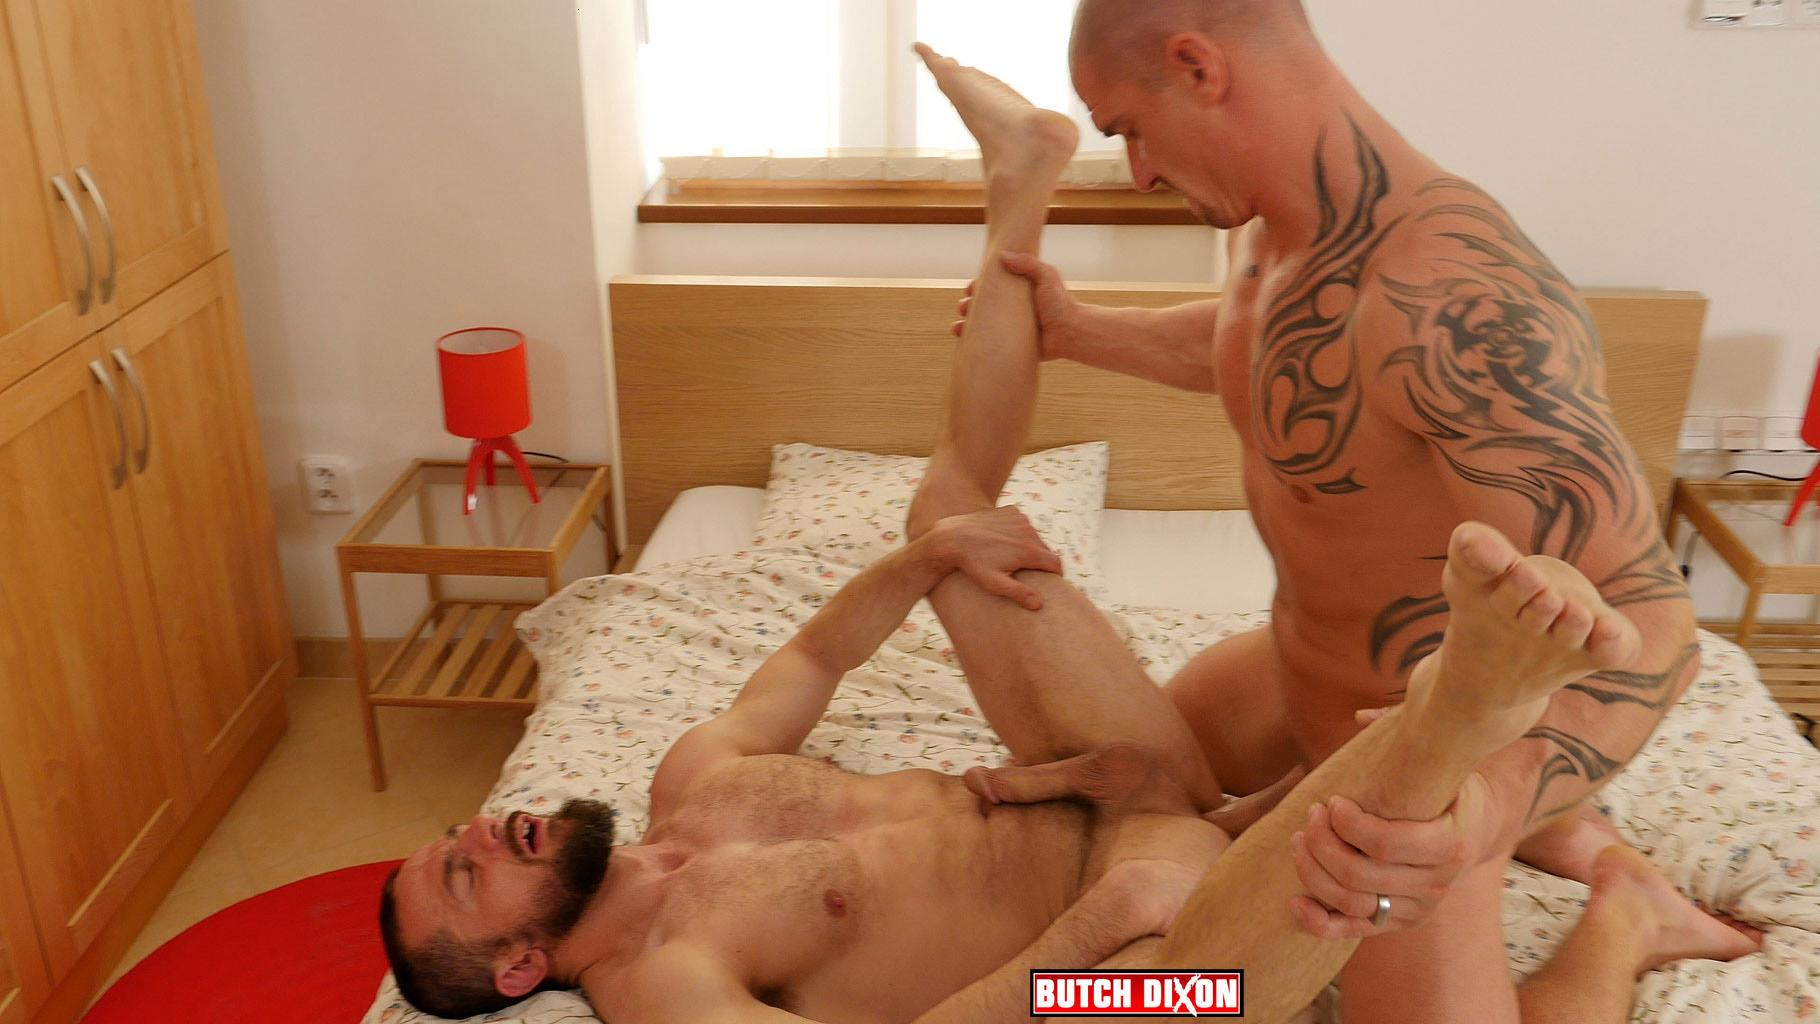 Butch-Dixon-Erik-Lenn-and-Mike-Bourne-Masculine-Guys-Fucking-Bareback-Amateur-Gay-Porn-22 Beefy Masculine Guys Fucking Bareback With A Big Uncut Cock